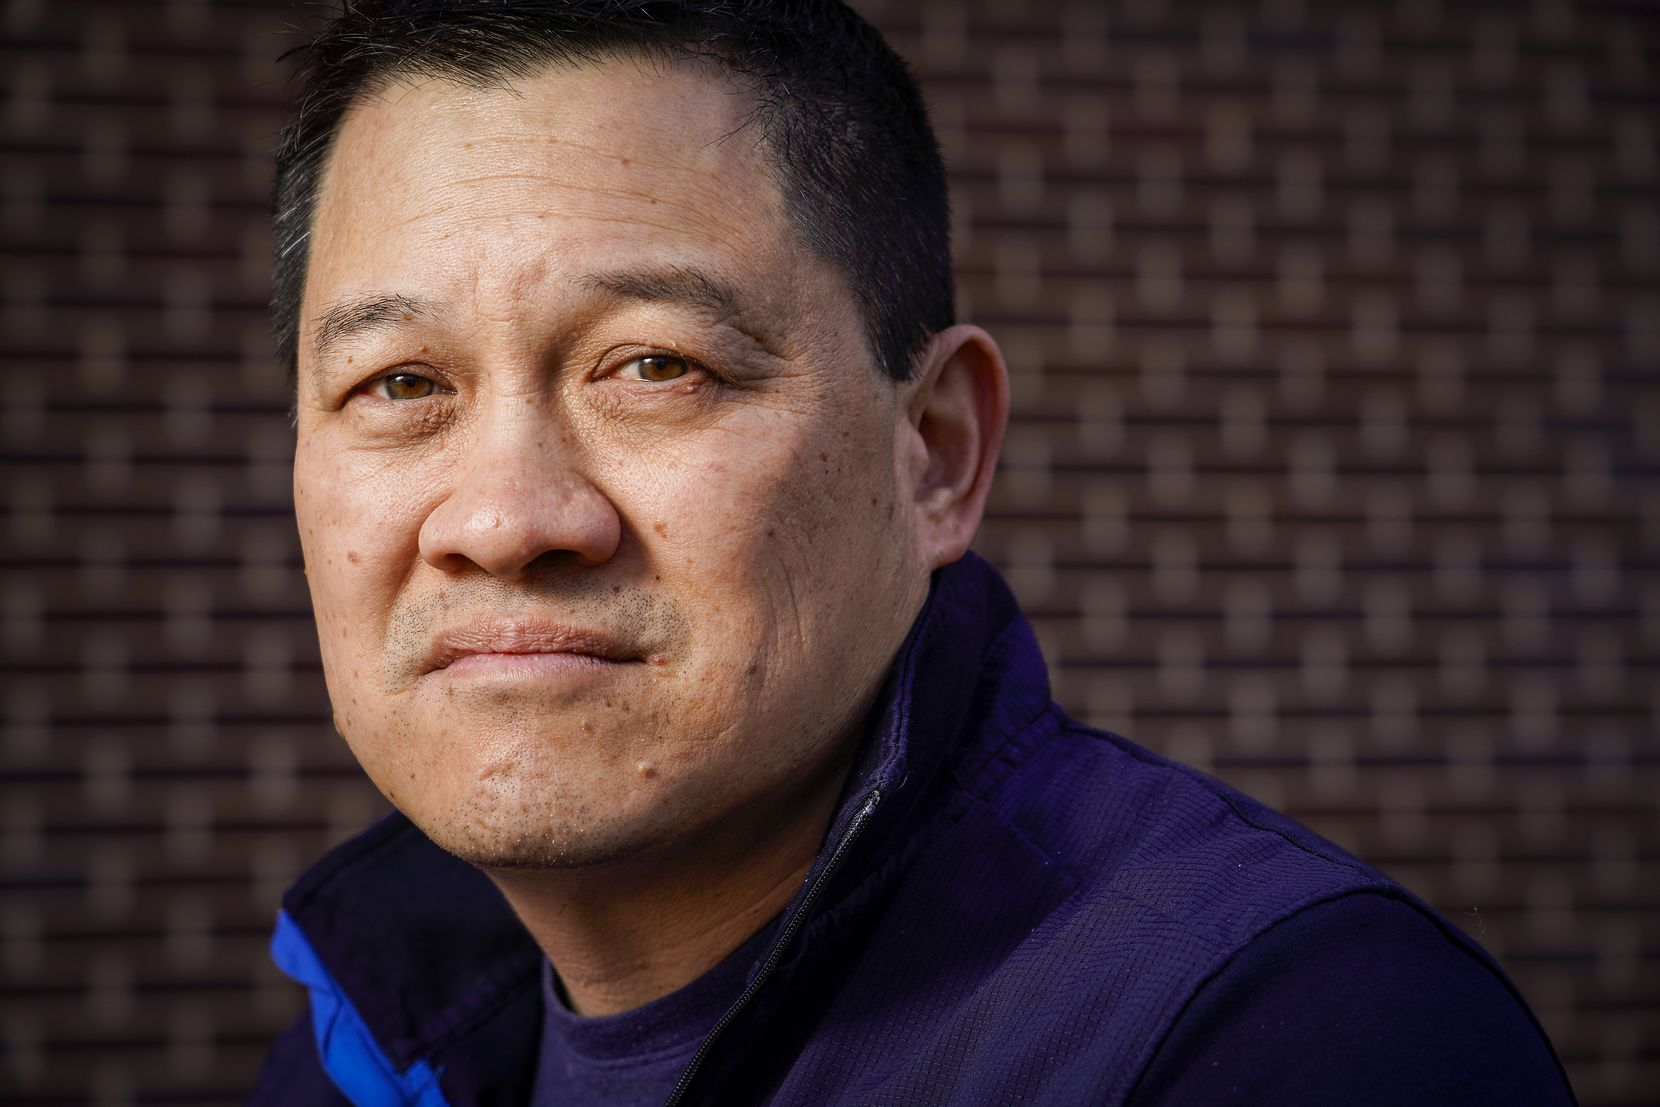 Albert Shen, who leads the Texas chapter of the Asian American Action Fund, was photographed in Southlake on Wednesday, March 17, 2021.